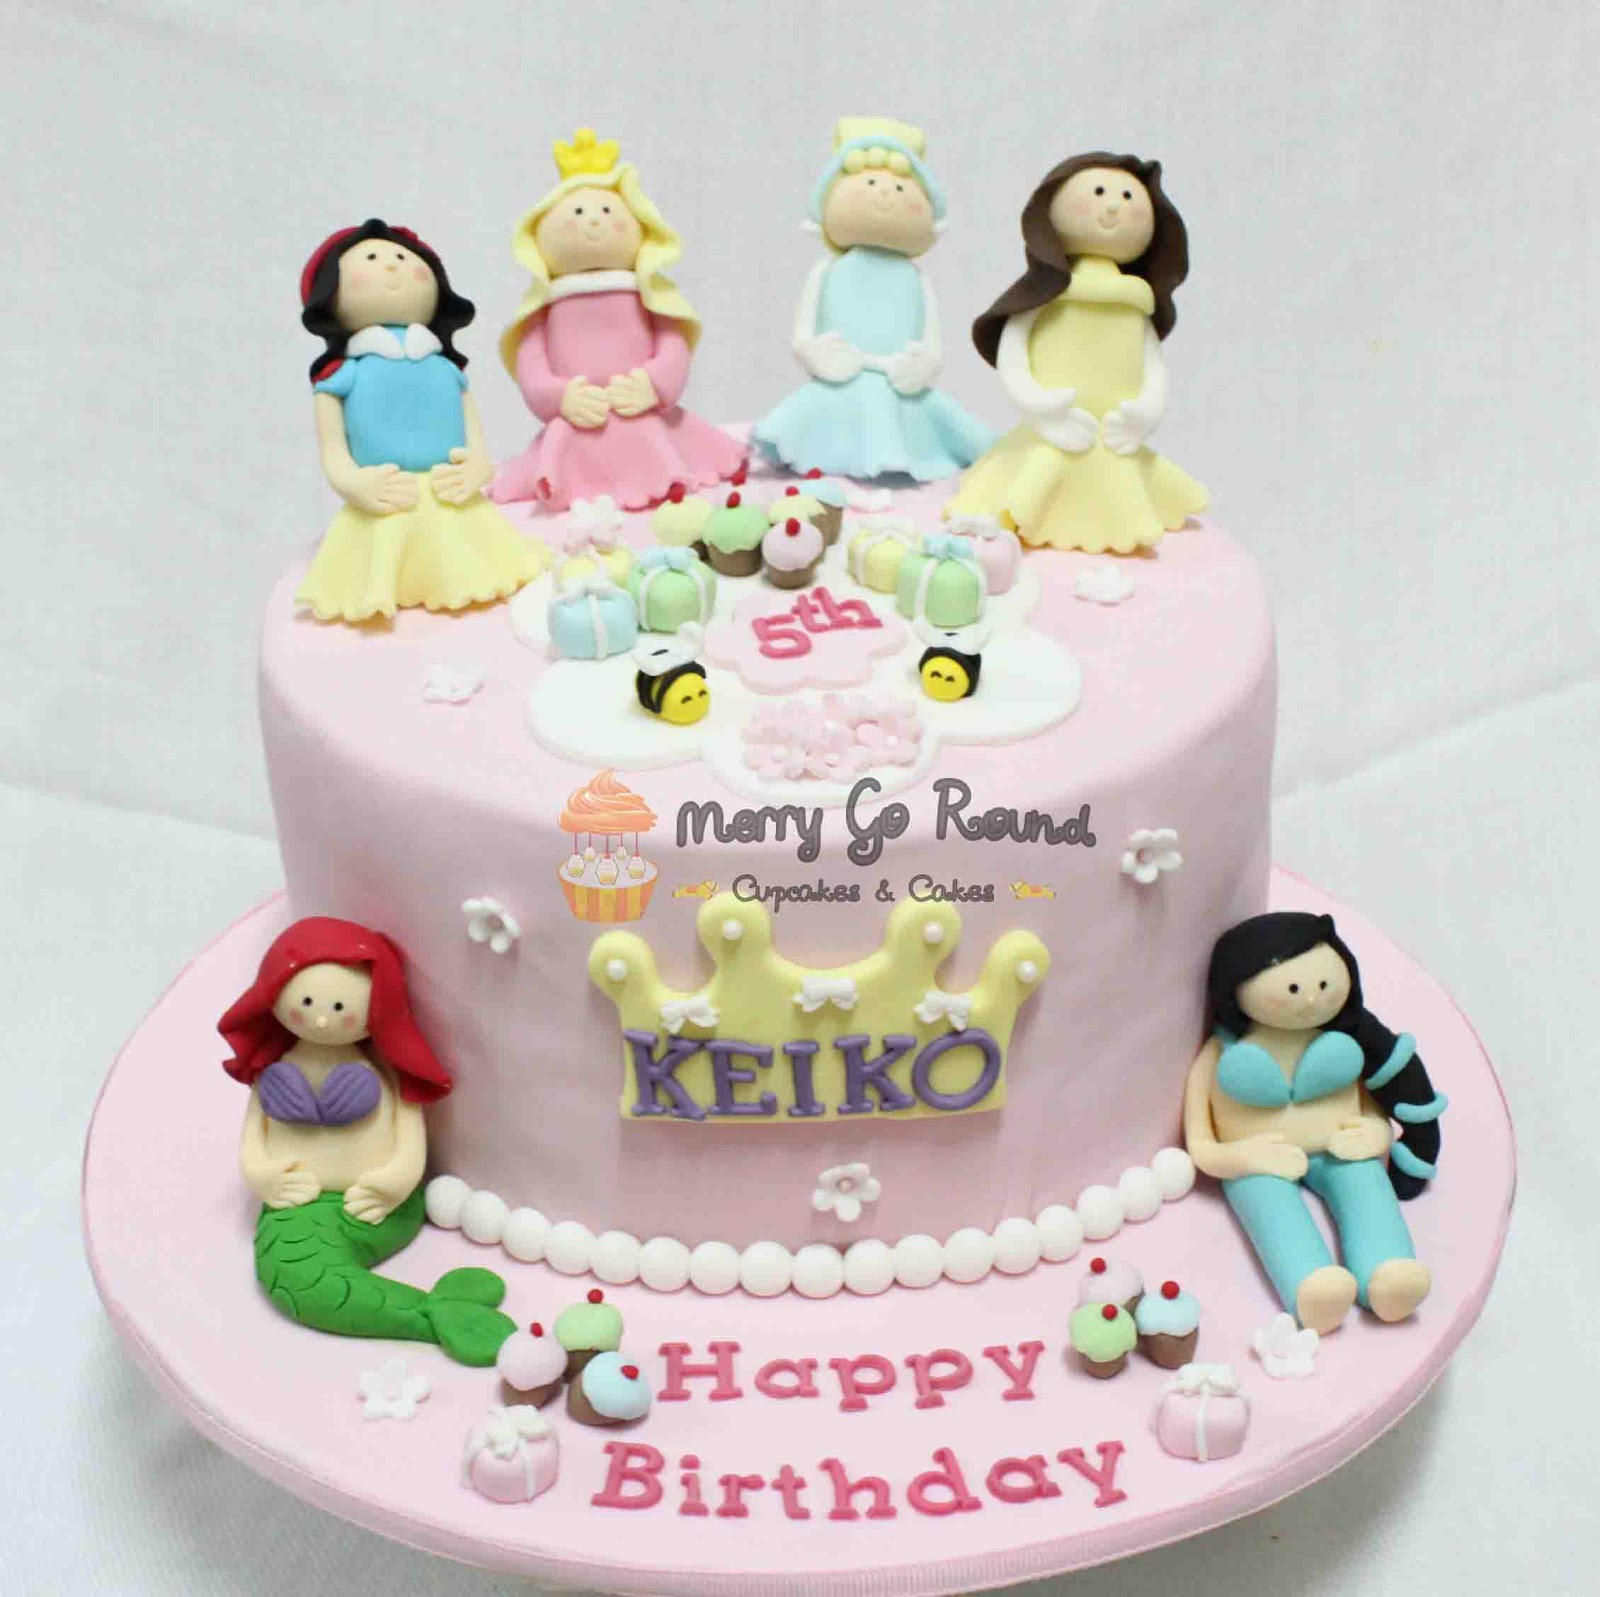 Disney Princess Birthday Cakes Merry Go Round Cupcakes Cake